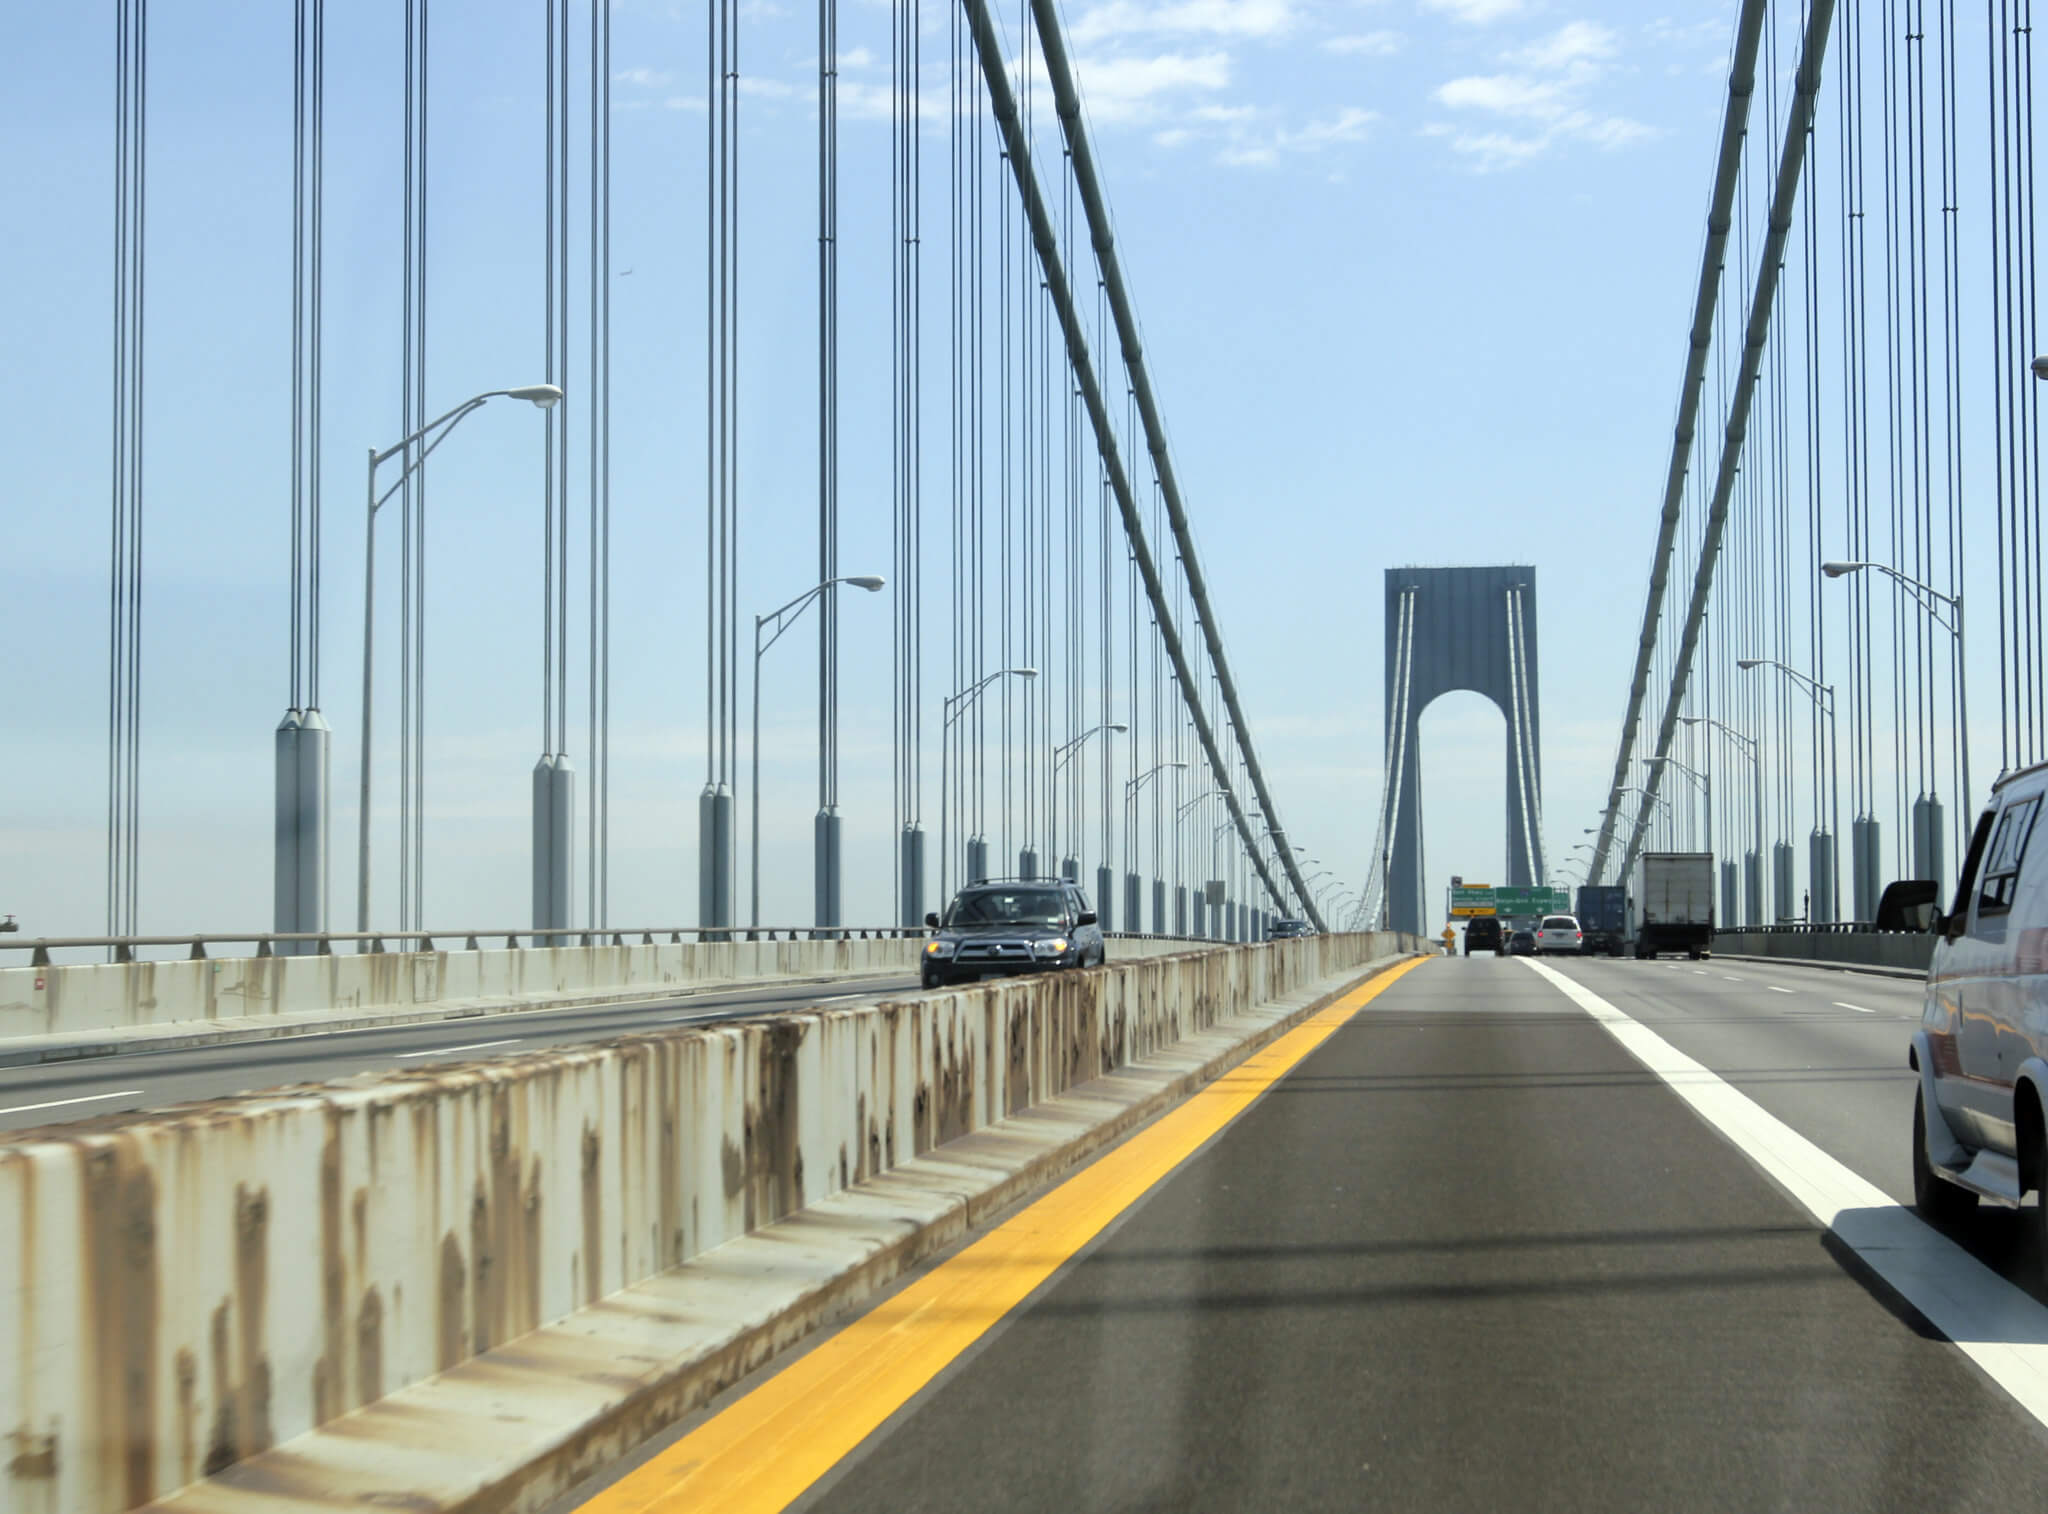 Queens-Midtown Tunnel & Verrazano Bridge Security System Upgrade